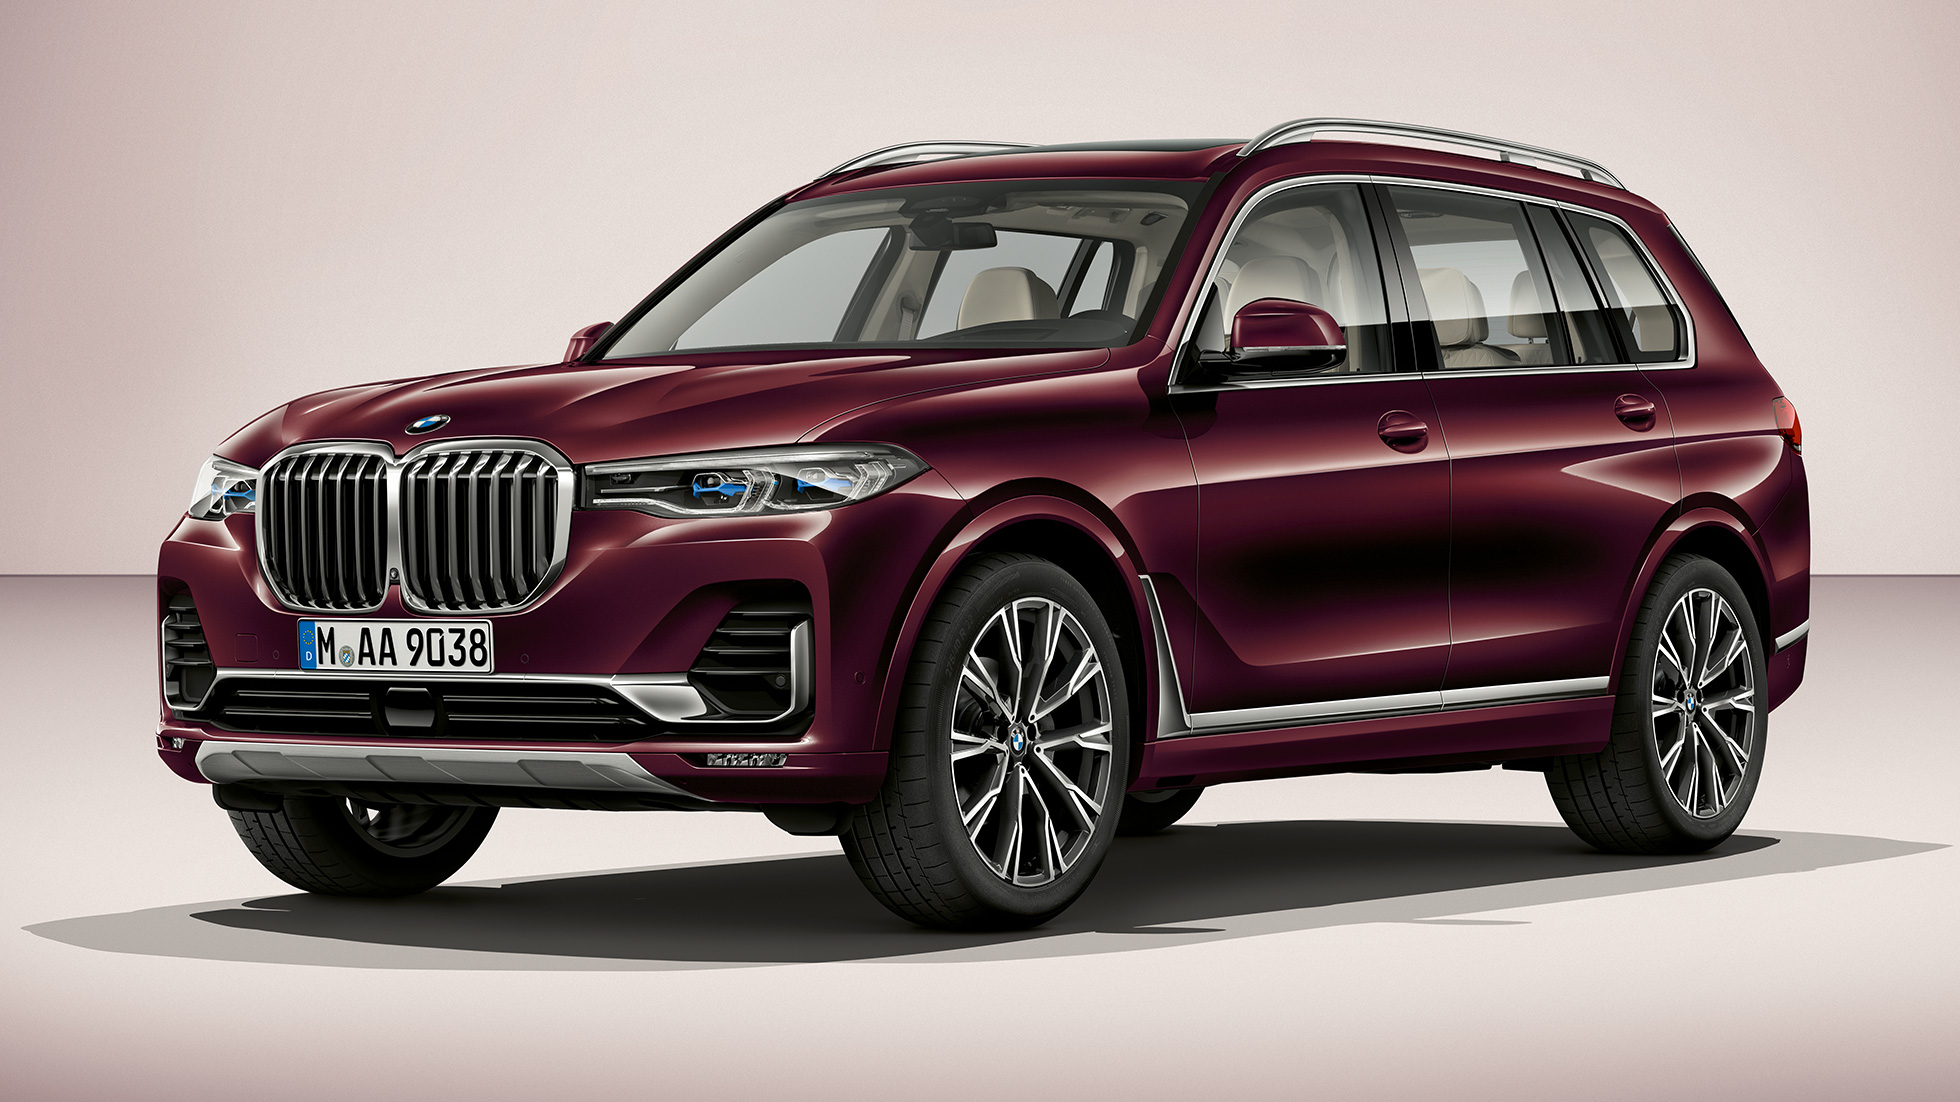 Studio shot of the BMW X7 three-quarter front view as BMW Individual X7 xDrive40i